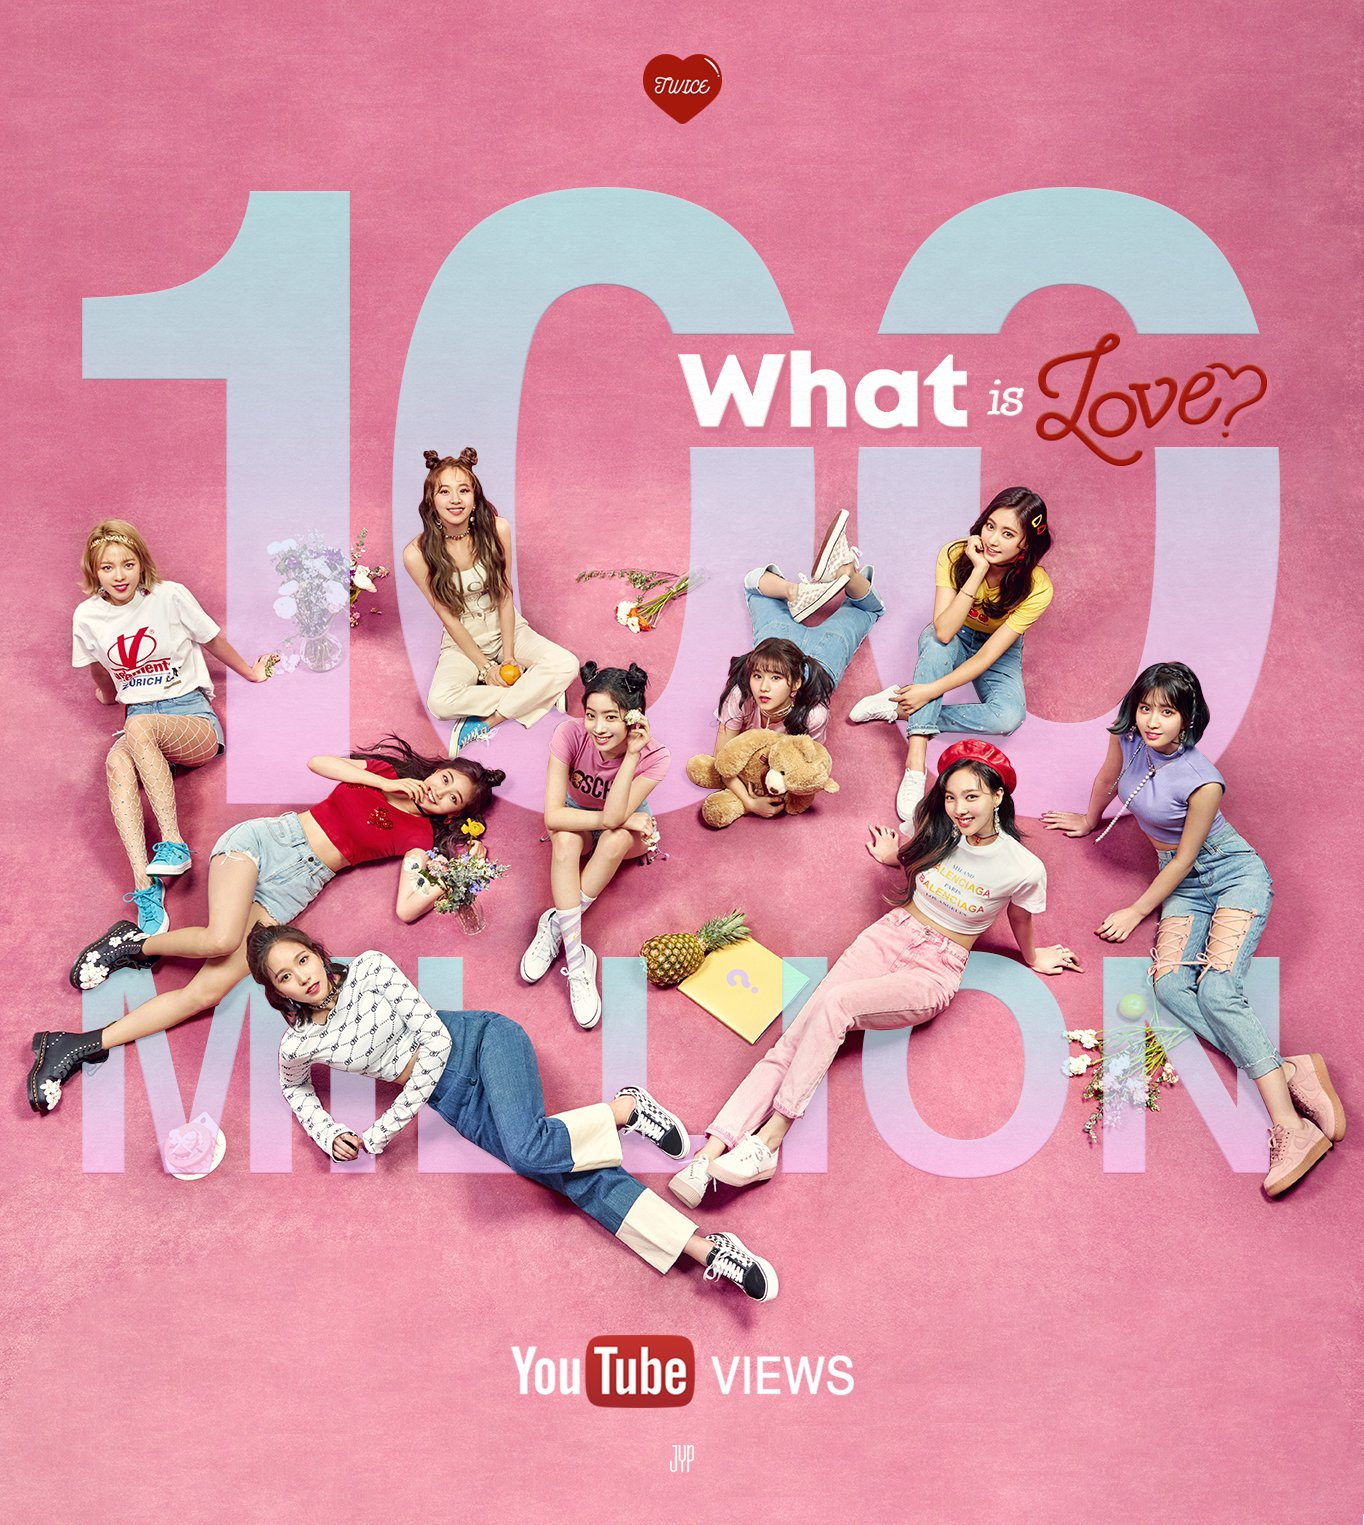 4f25edb26d Twice 'What Is Love?' Surpassed 100M Views On YouTube